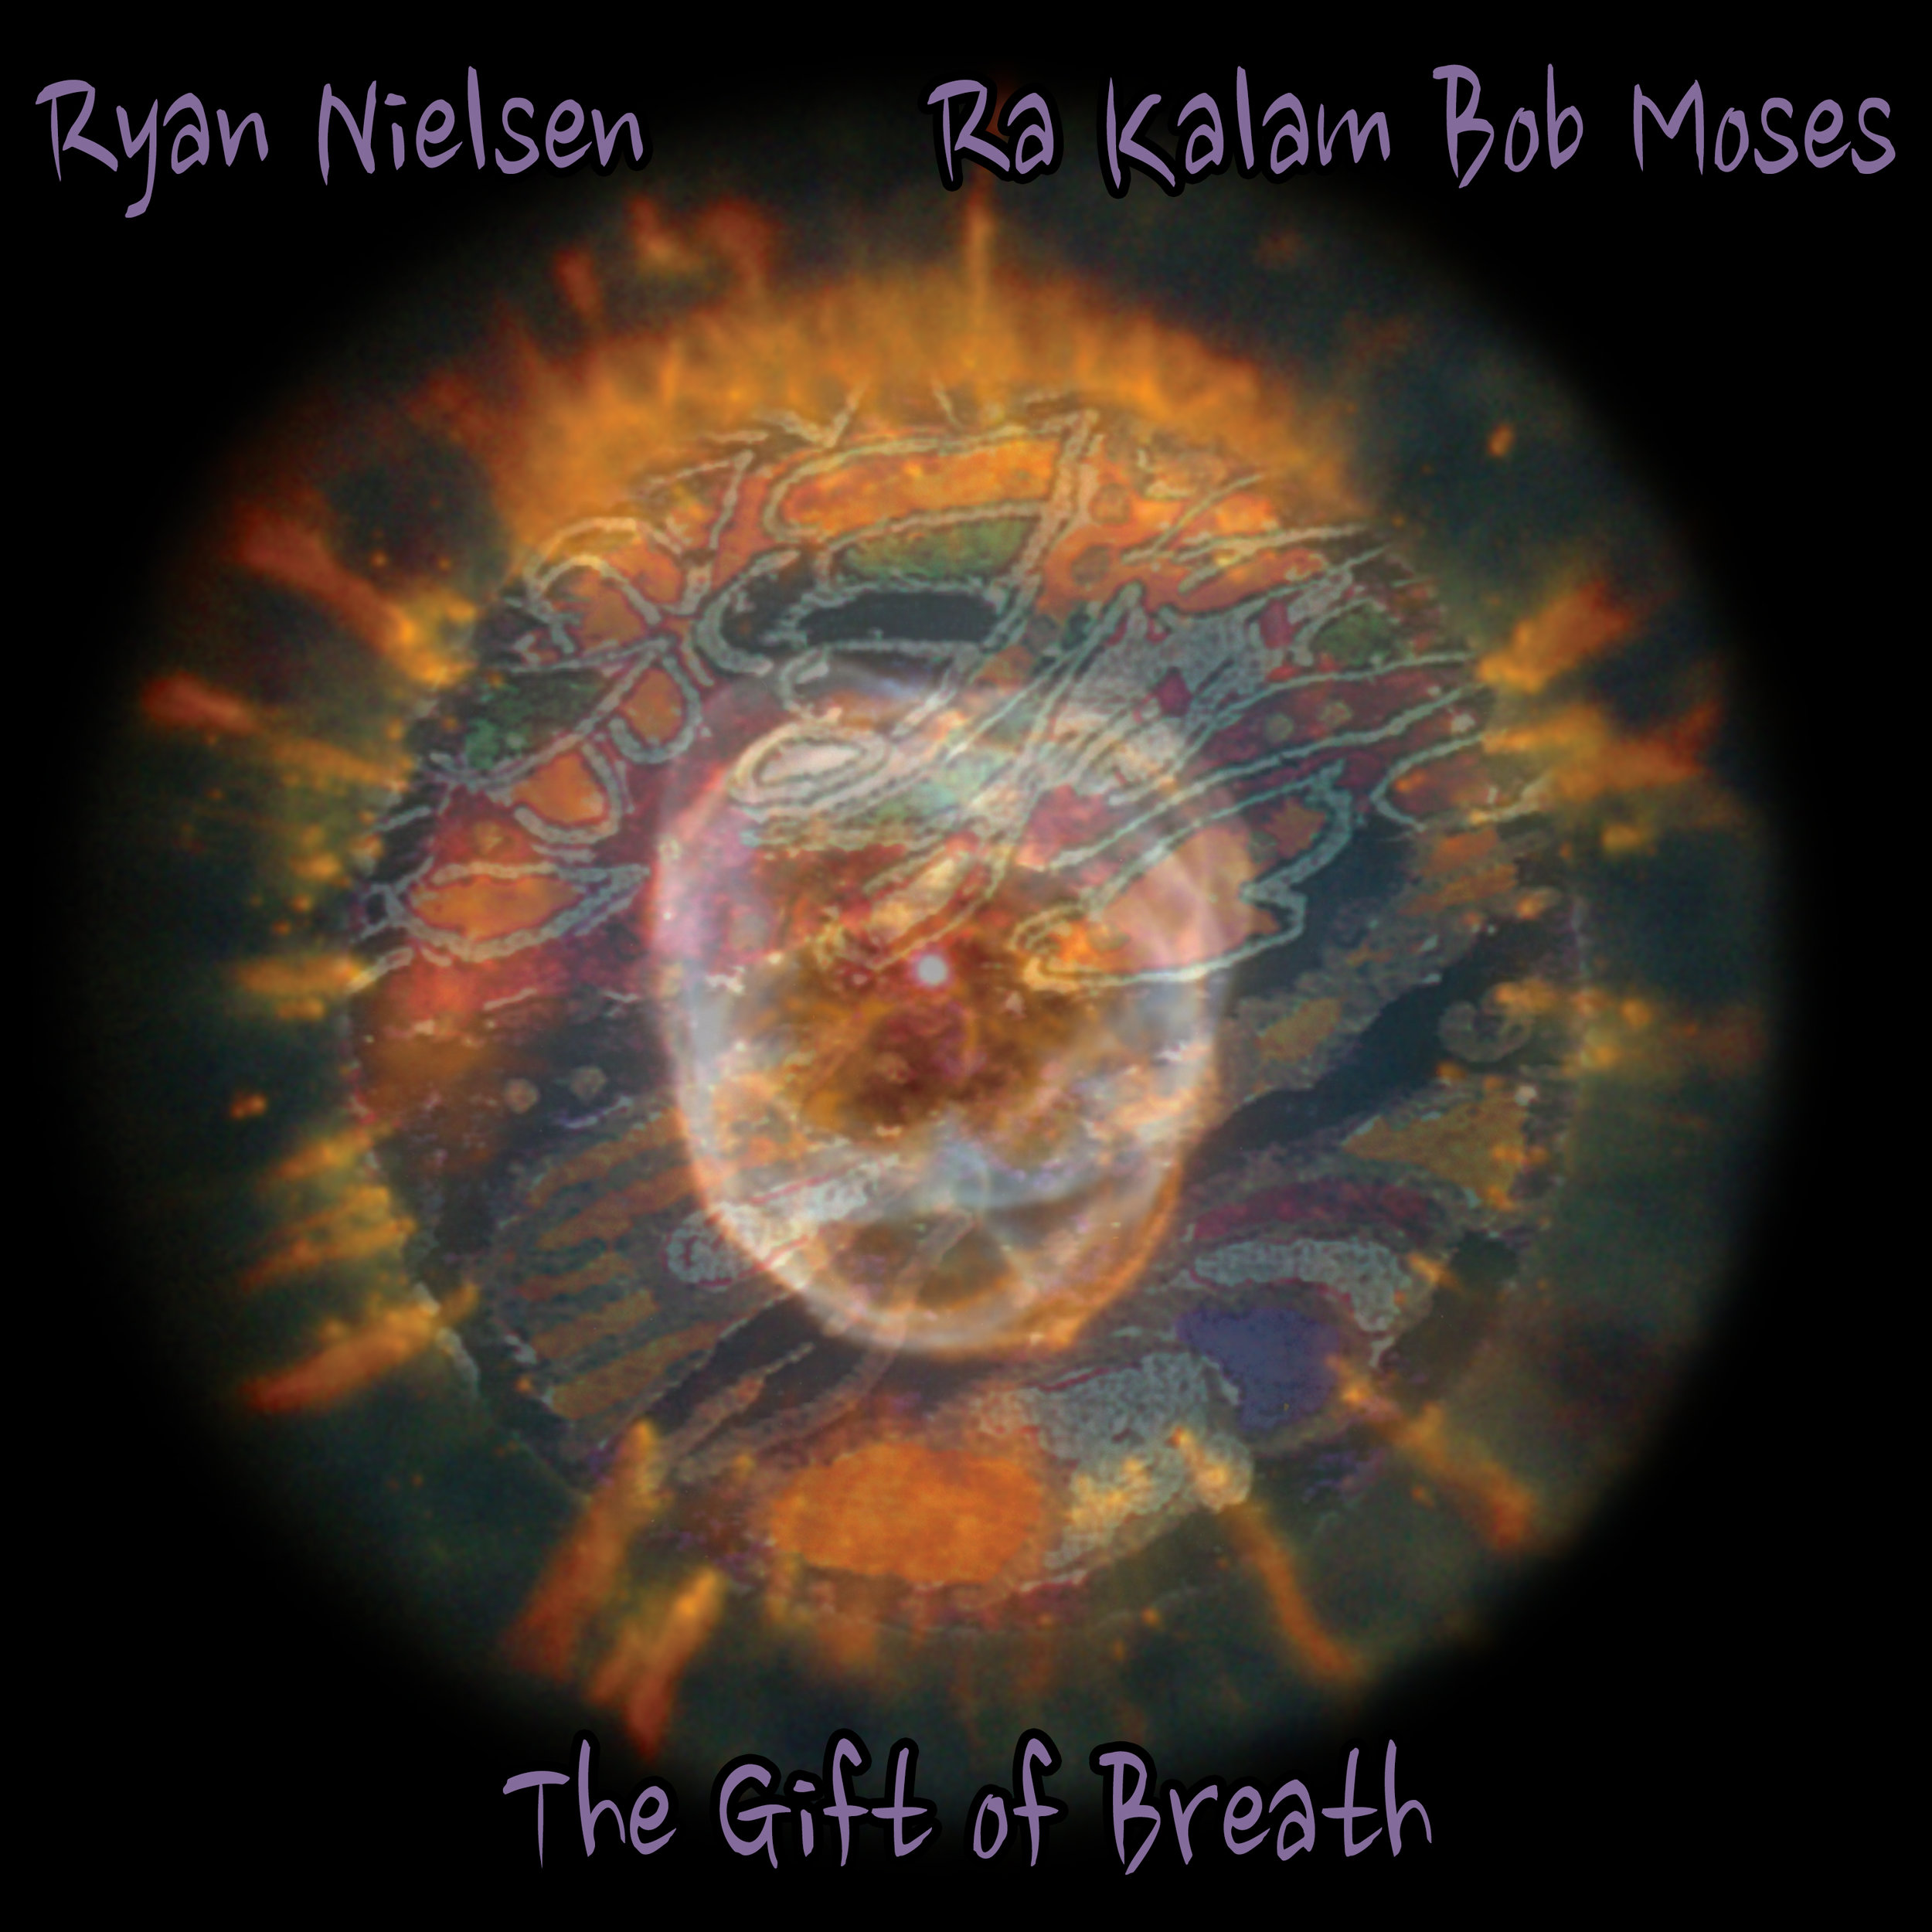 THE GIFT OF BREATH    by Ryan Nielsen and Ra Kalam Bob Moses    Compact Disc -    E-mail your order     Digital Downloads -    Amazon    -    iTunes     Release Date - 2014    Label - Ra Kalam Records    Ryan Nielsen - Trumpet    John Lockwood - Bass (Tracks 1, 10, 11)    Aryeh Kobrinski - Bass (Tracks 1, 2, 3, 4, 5, 8, 9, 10)    Ra Kalam Bob Moses - Drums, djembe, gongs, talking drum, keyboard     SAMPLE